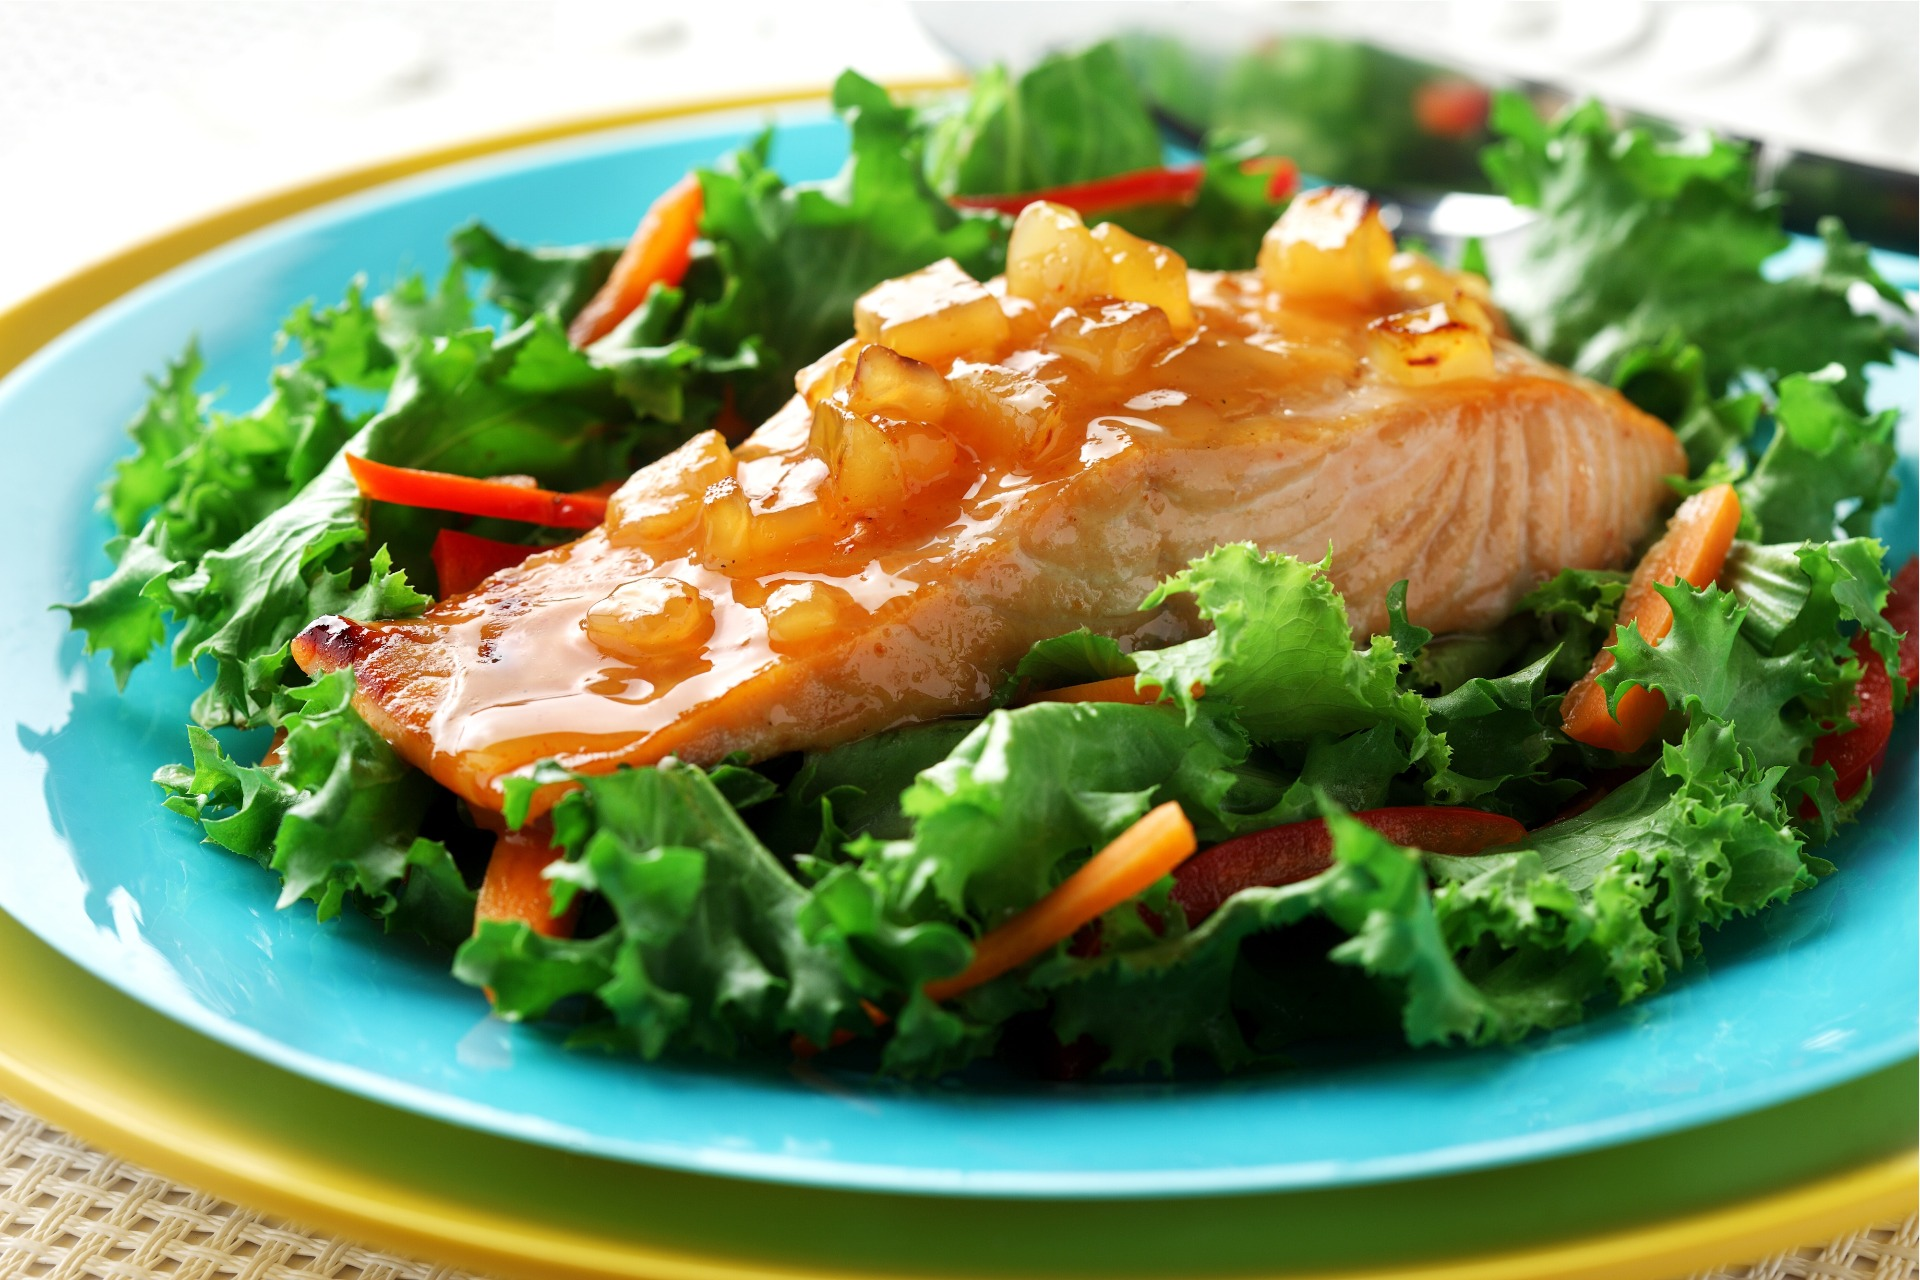 Salmon with mango chutney on bed of greens